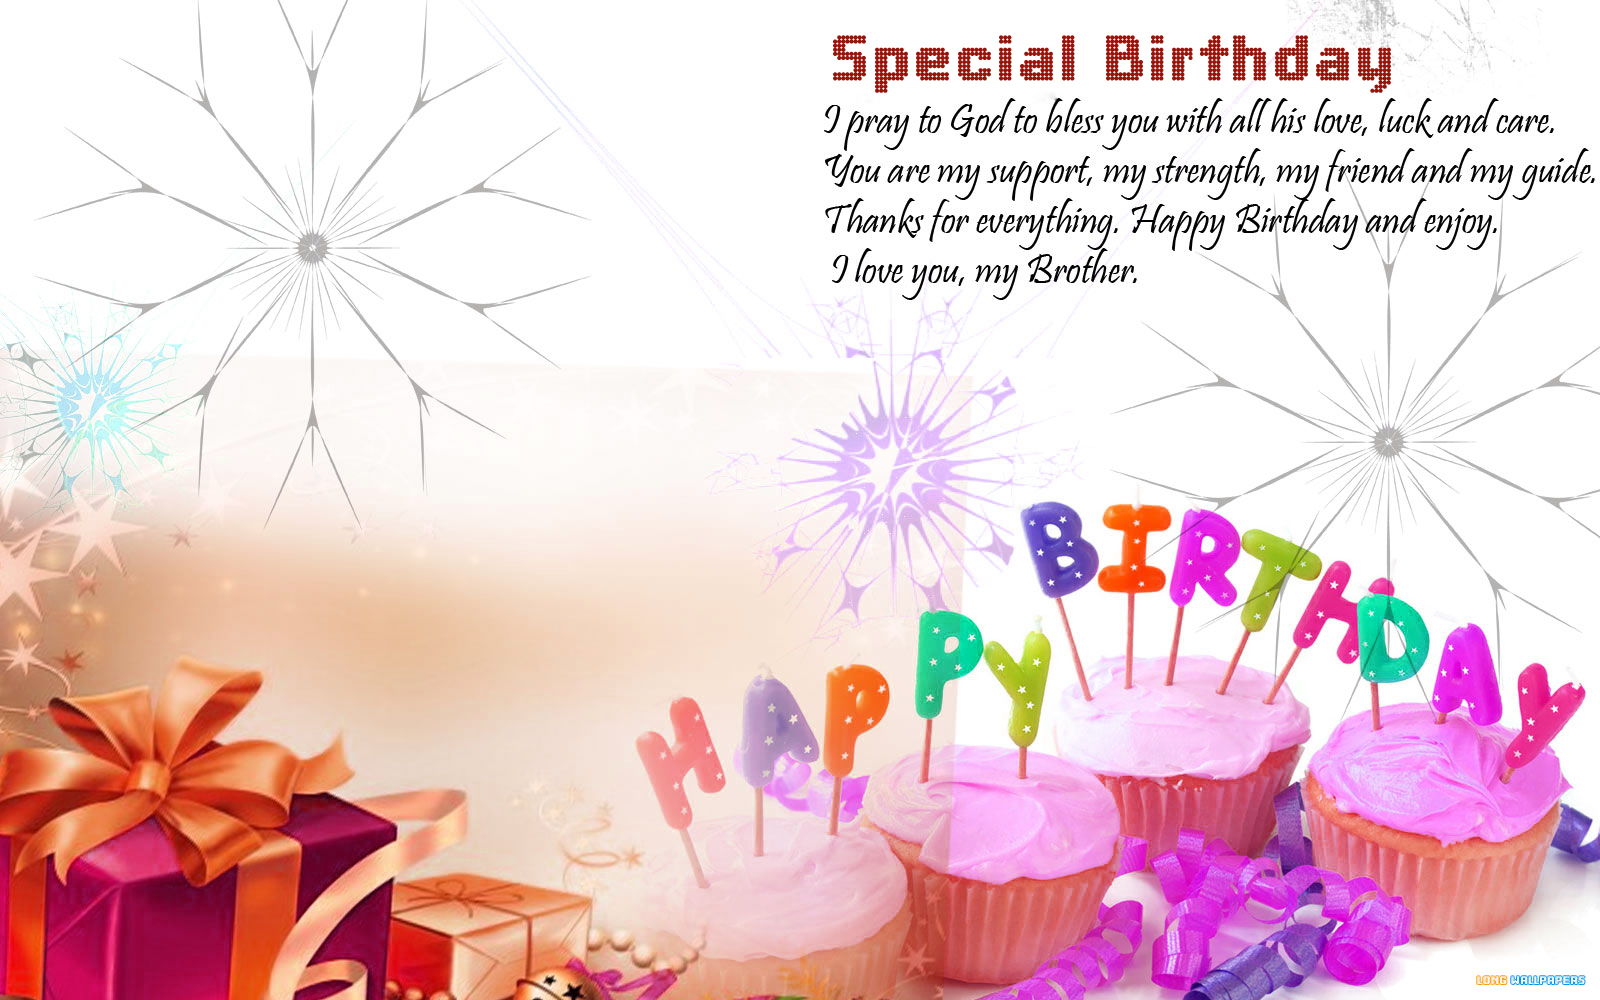 free birthday picture text messages ; fd830ce8359fa87d20c8aabfd073dbad